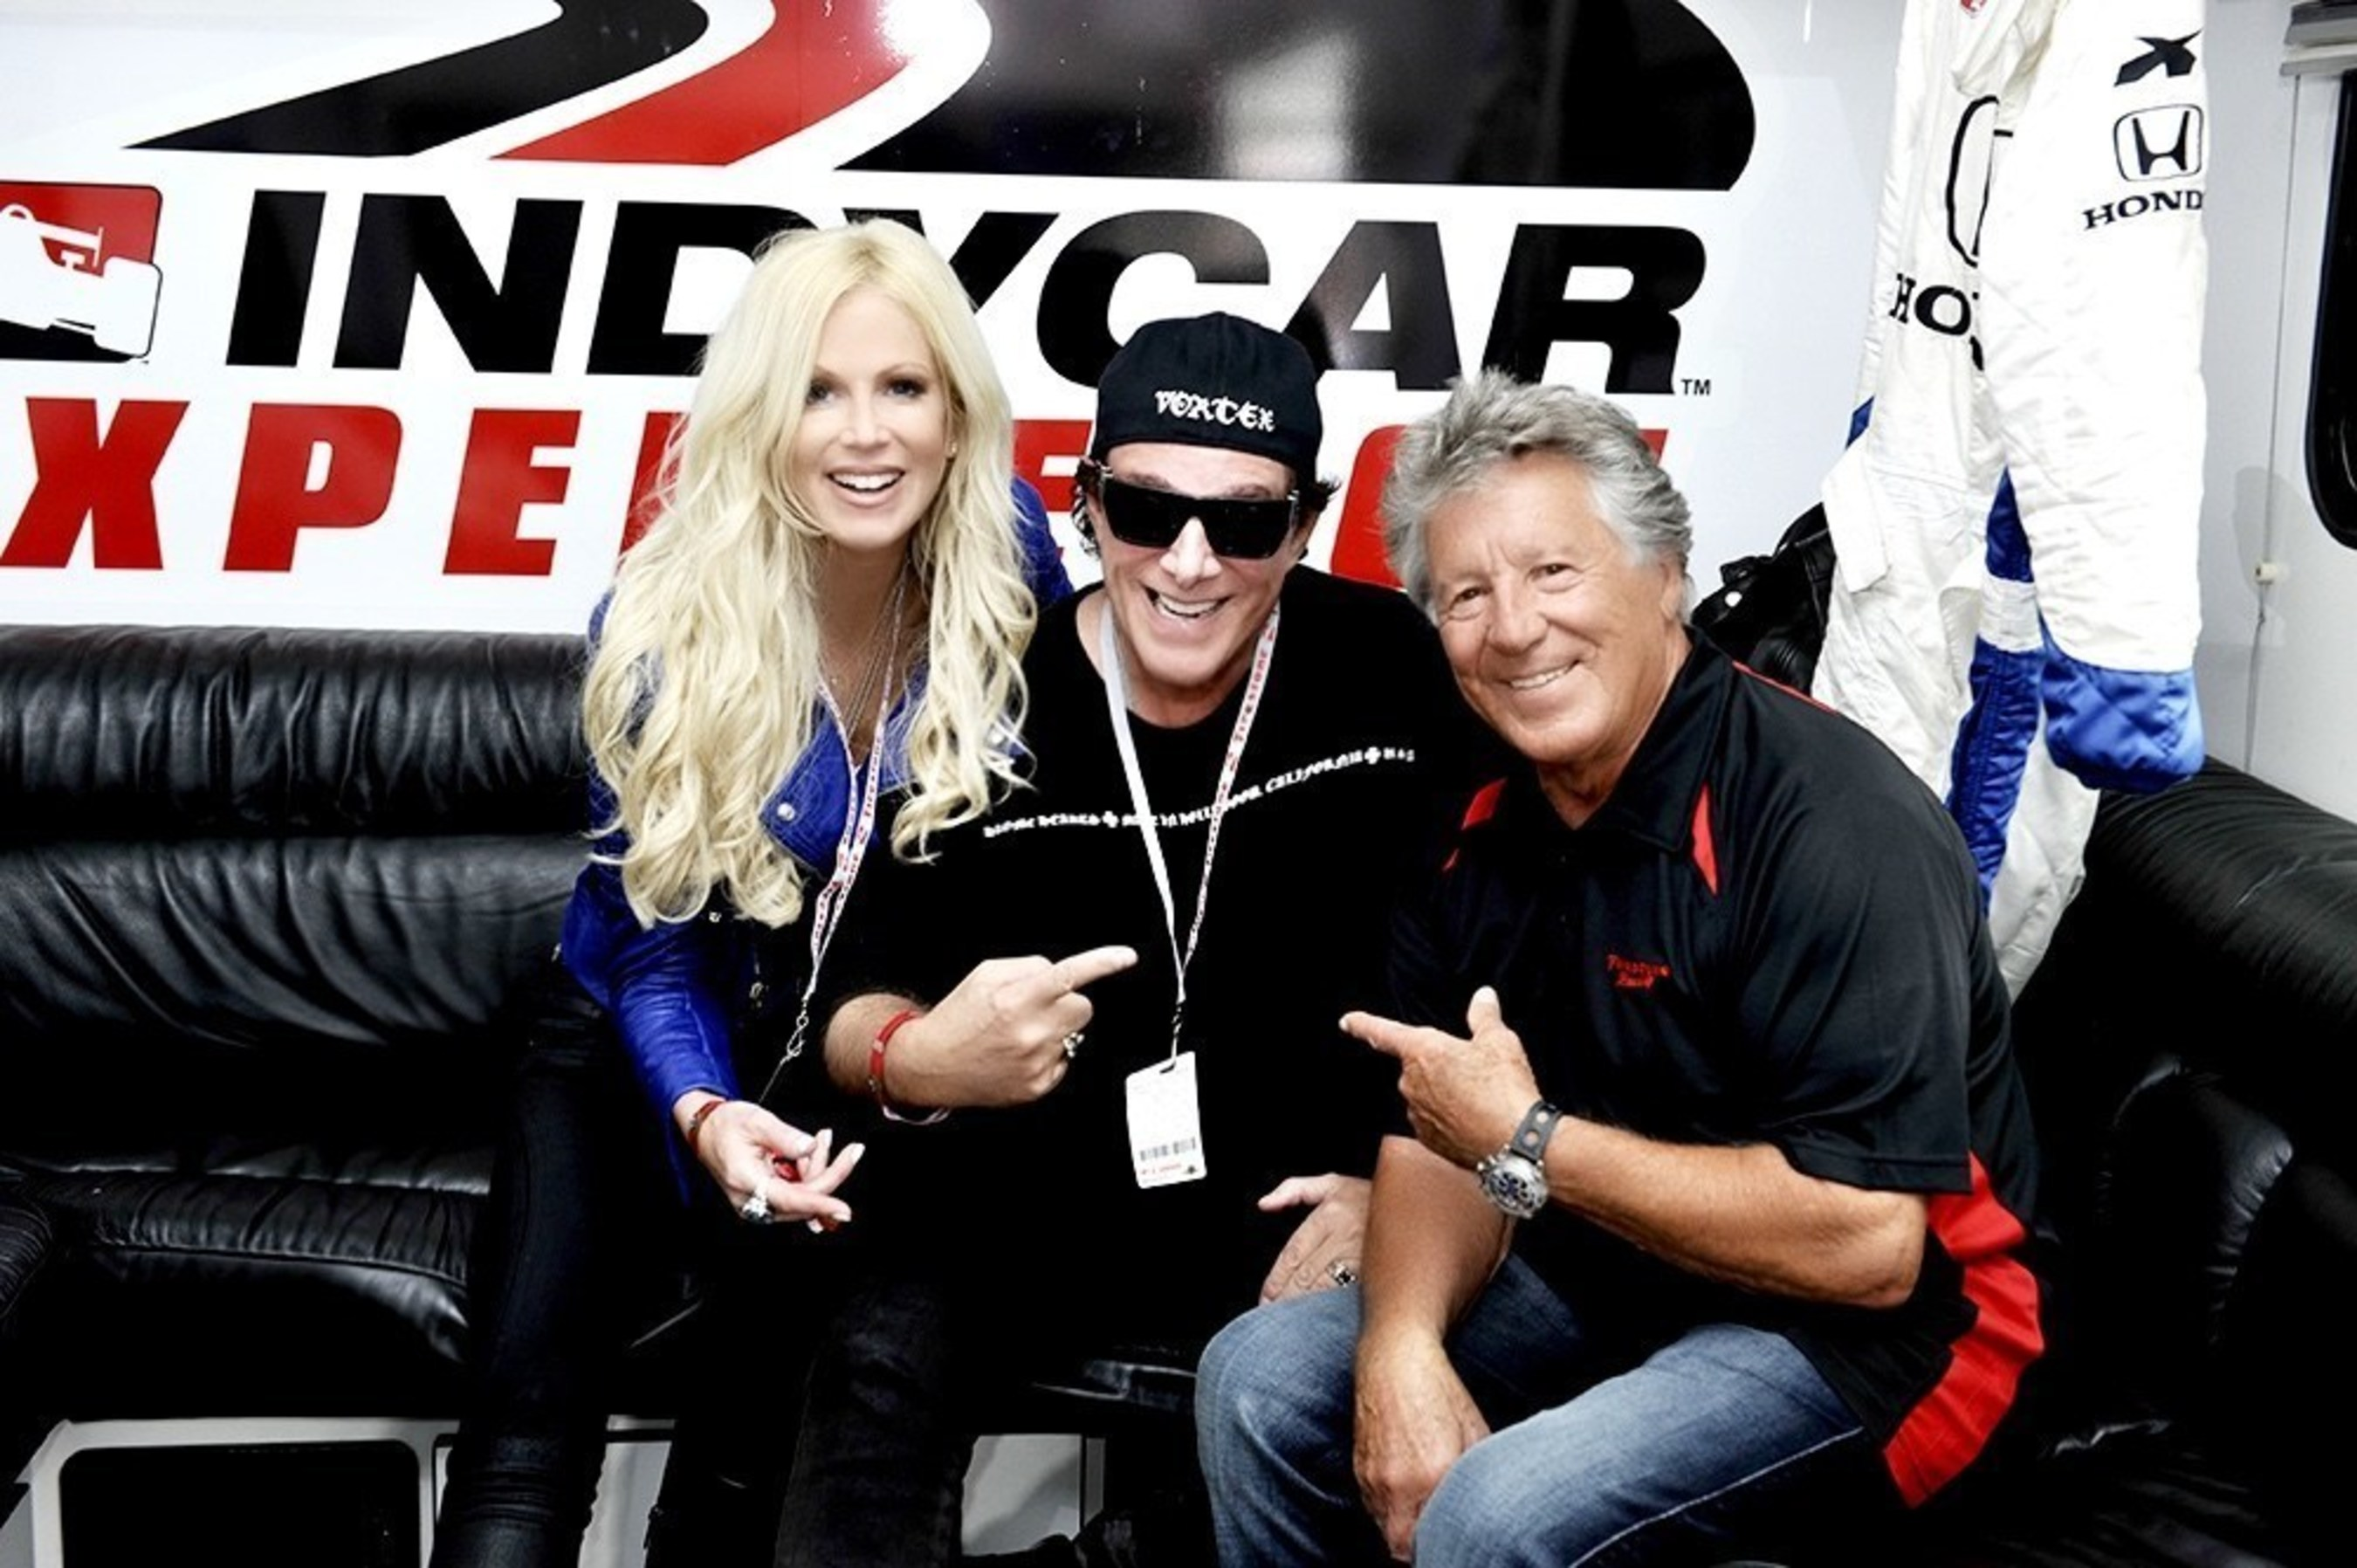 Neal Schon receives gift from Michaele Schon: the ride of a lifetime with Mario Andretti